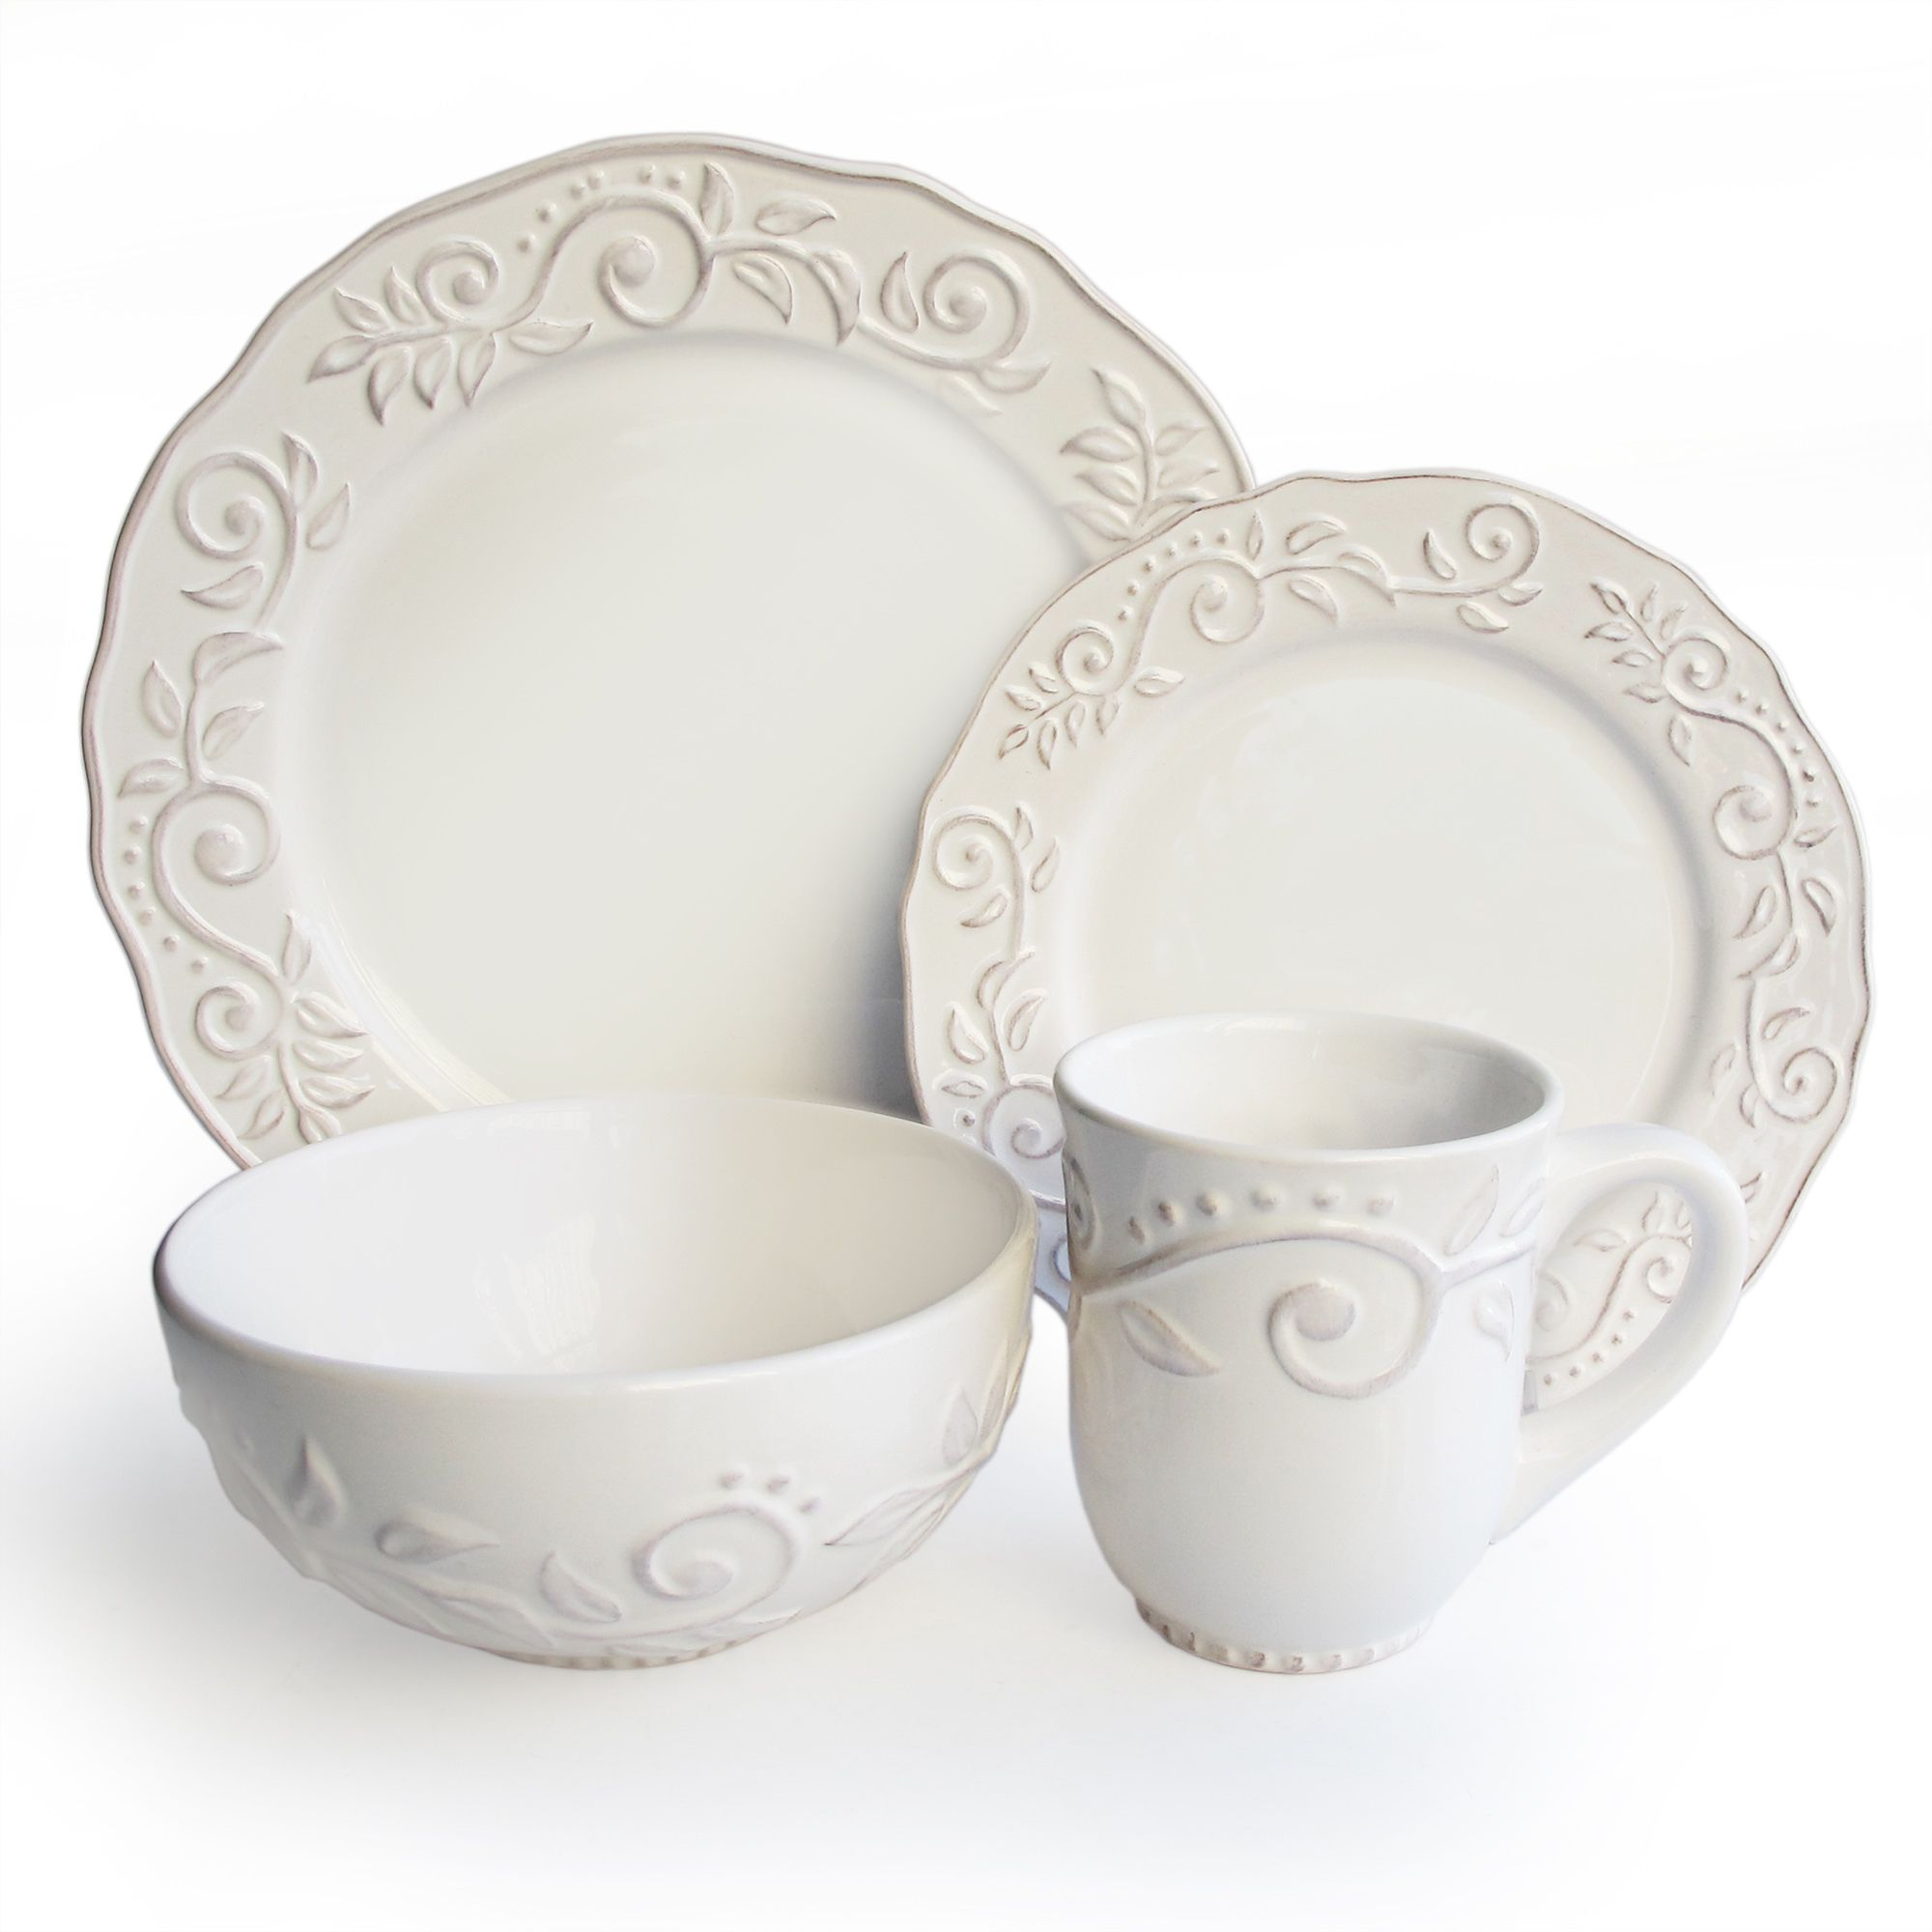 Elegant Tableware For Dining Rooms With Style: Raised Leafy Accents Along The Rims And Edges Of This